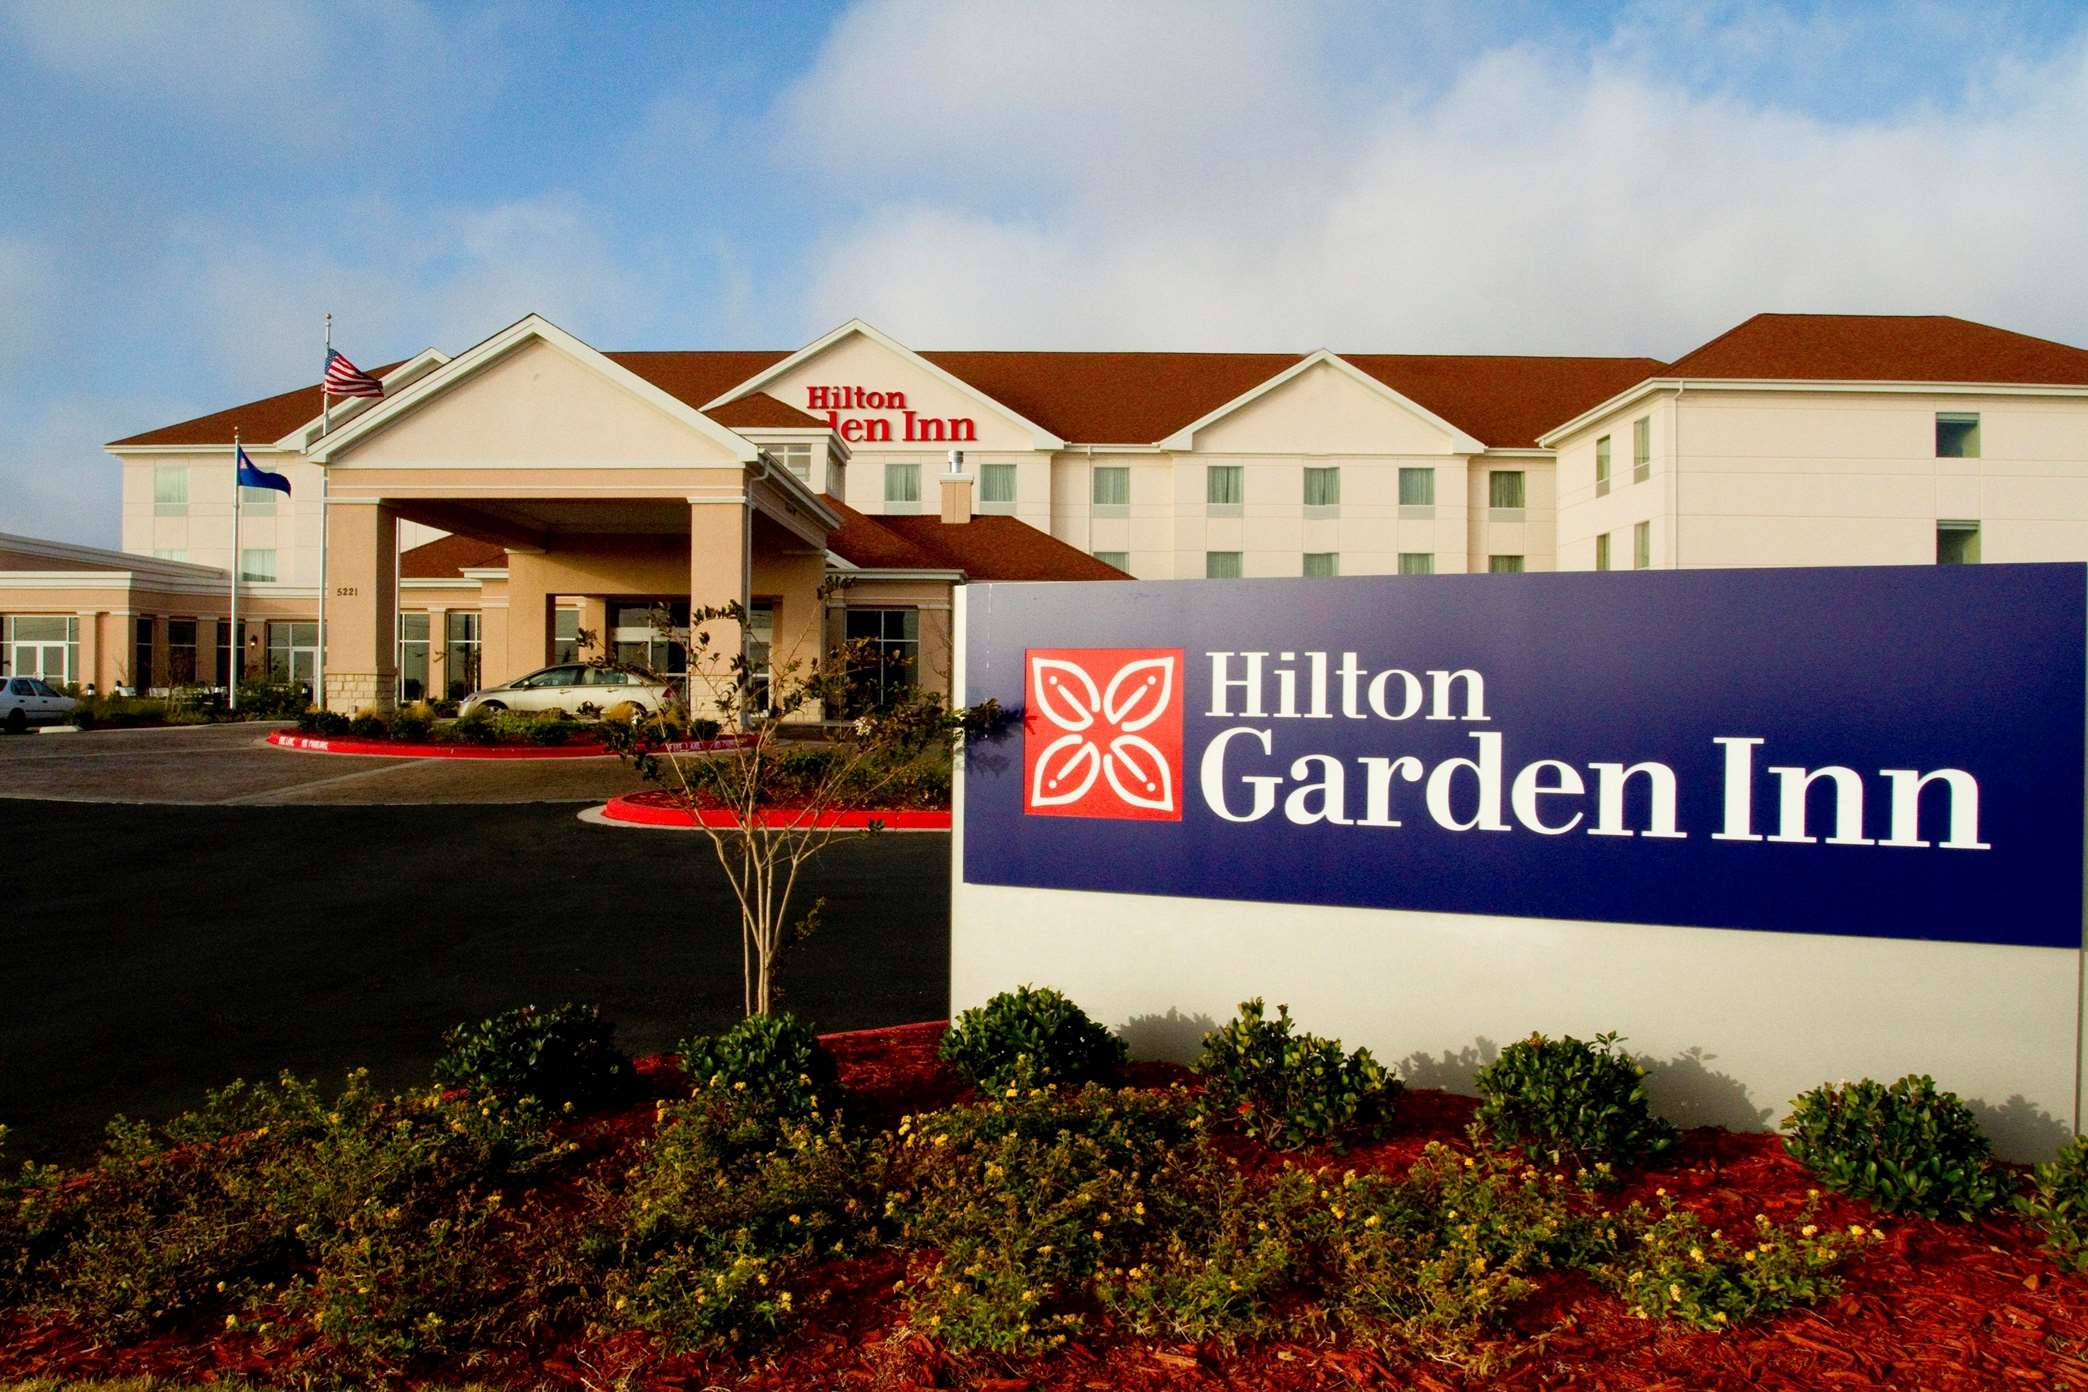 Hilton Garden Inn Odessa In Odessa Tx Hotels Motels Yellow Pages Directory Inc